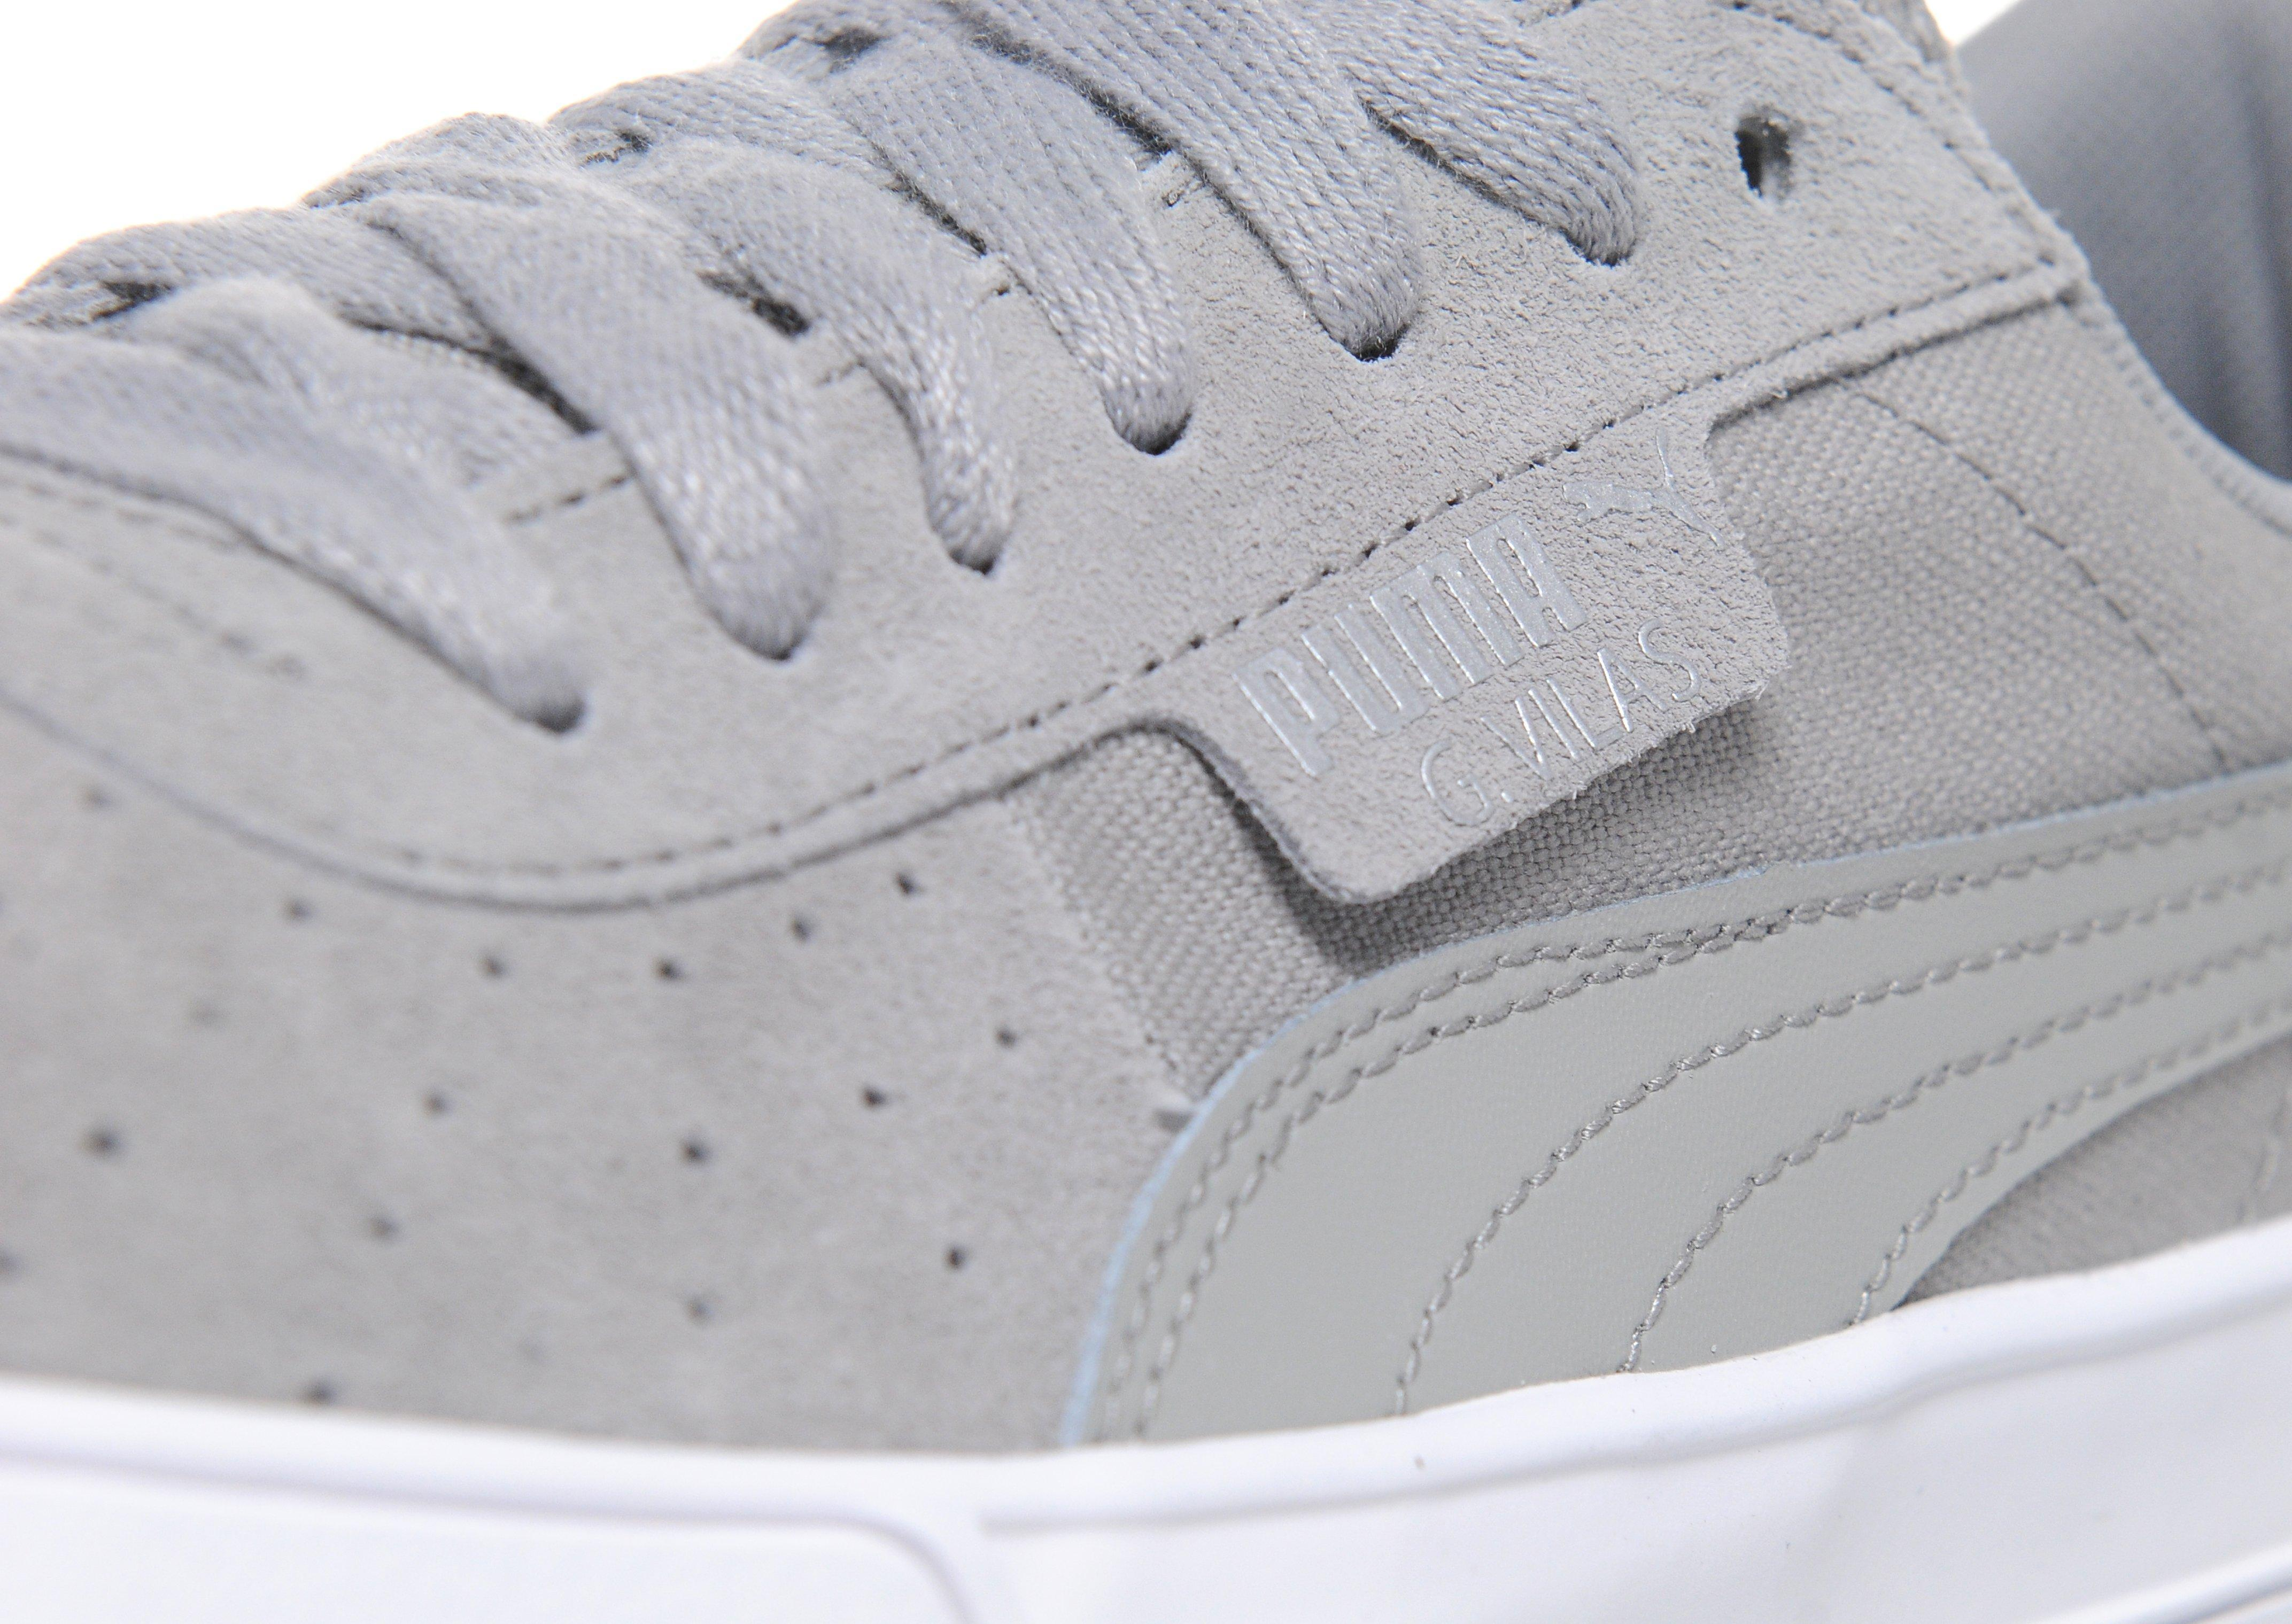 vilas guys Shop for finish line athletic shoes online at macyscom make a statement wherever you go in the style-savvy puma g vilas casual sneakers named for 1970s tennis star and famed playboy guillermo vilas, these sick sneakers have throwback styling and tennis performance details for a sneaker that'll have you winning just like vilas.